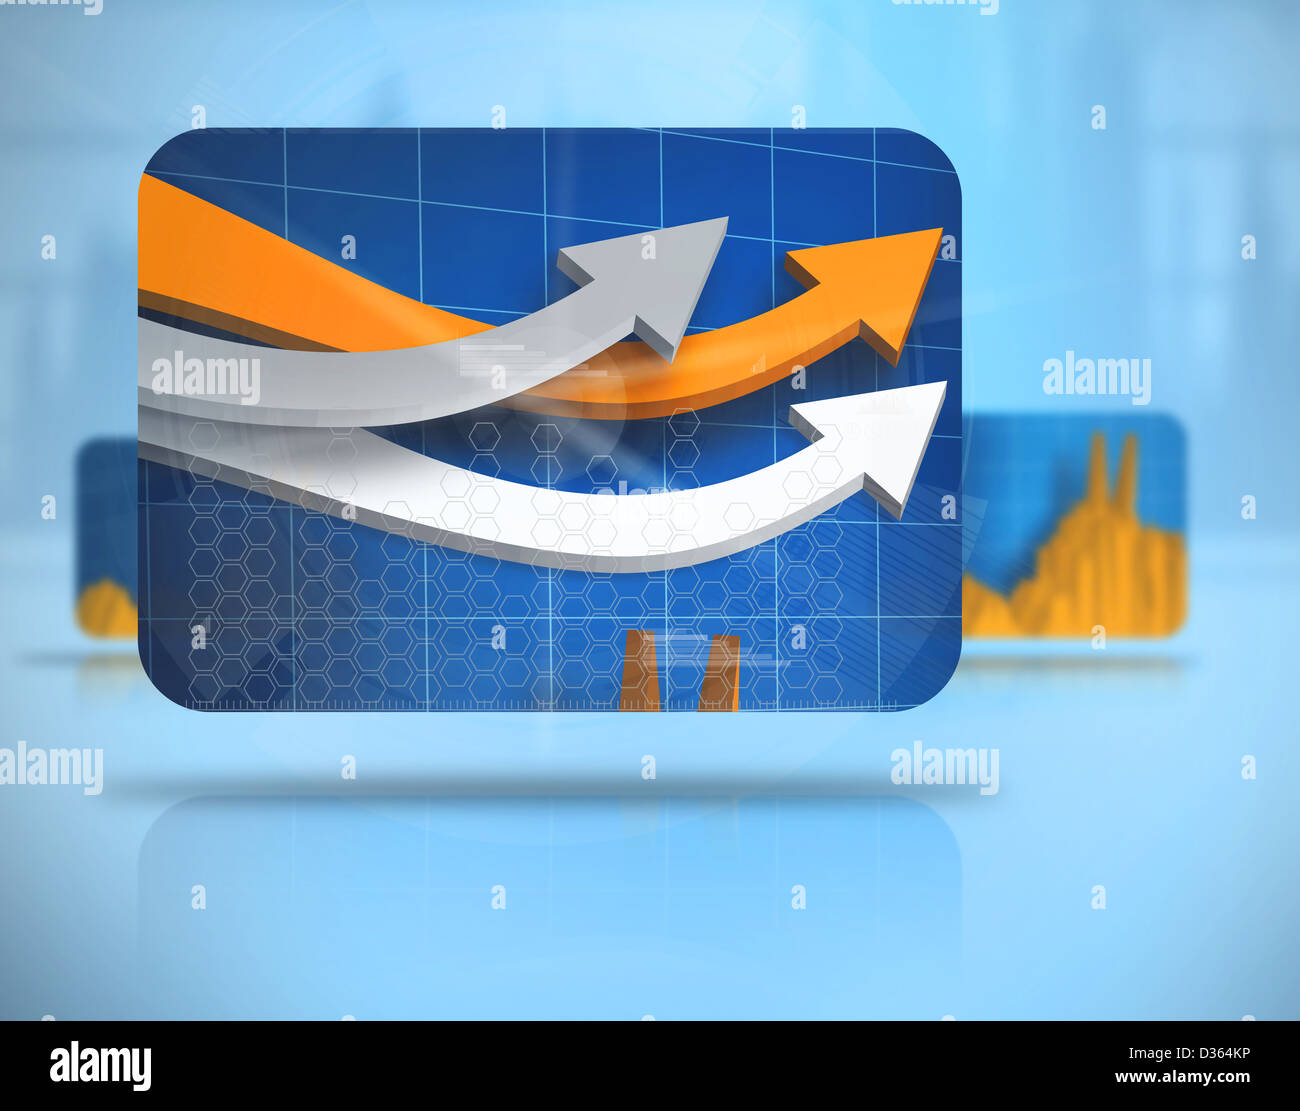 Digital background with screens including graphs - Stock Image